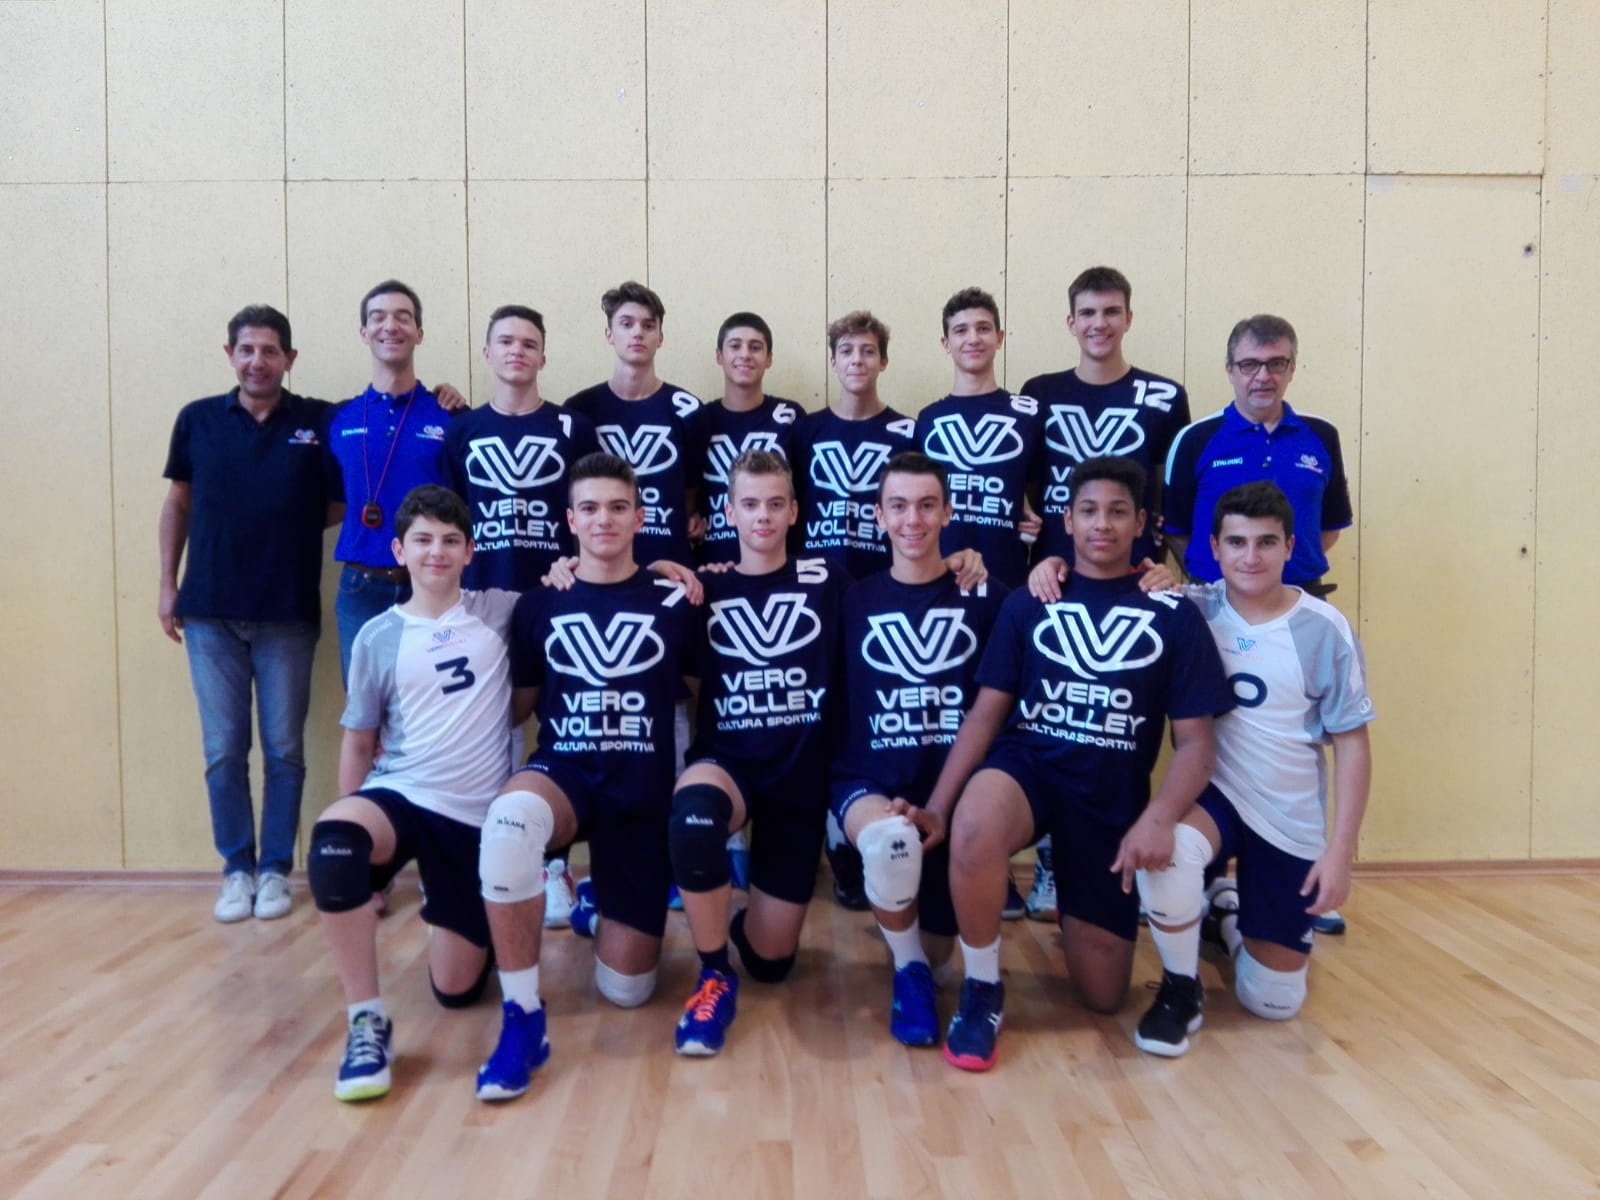 VERO VOLLEY U16